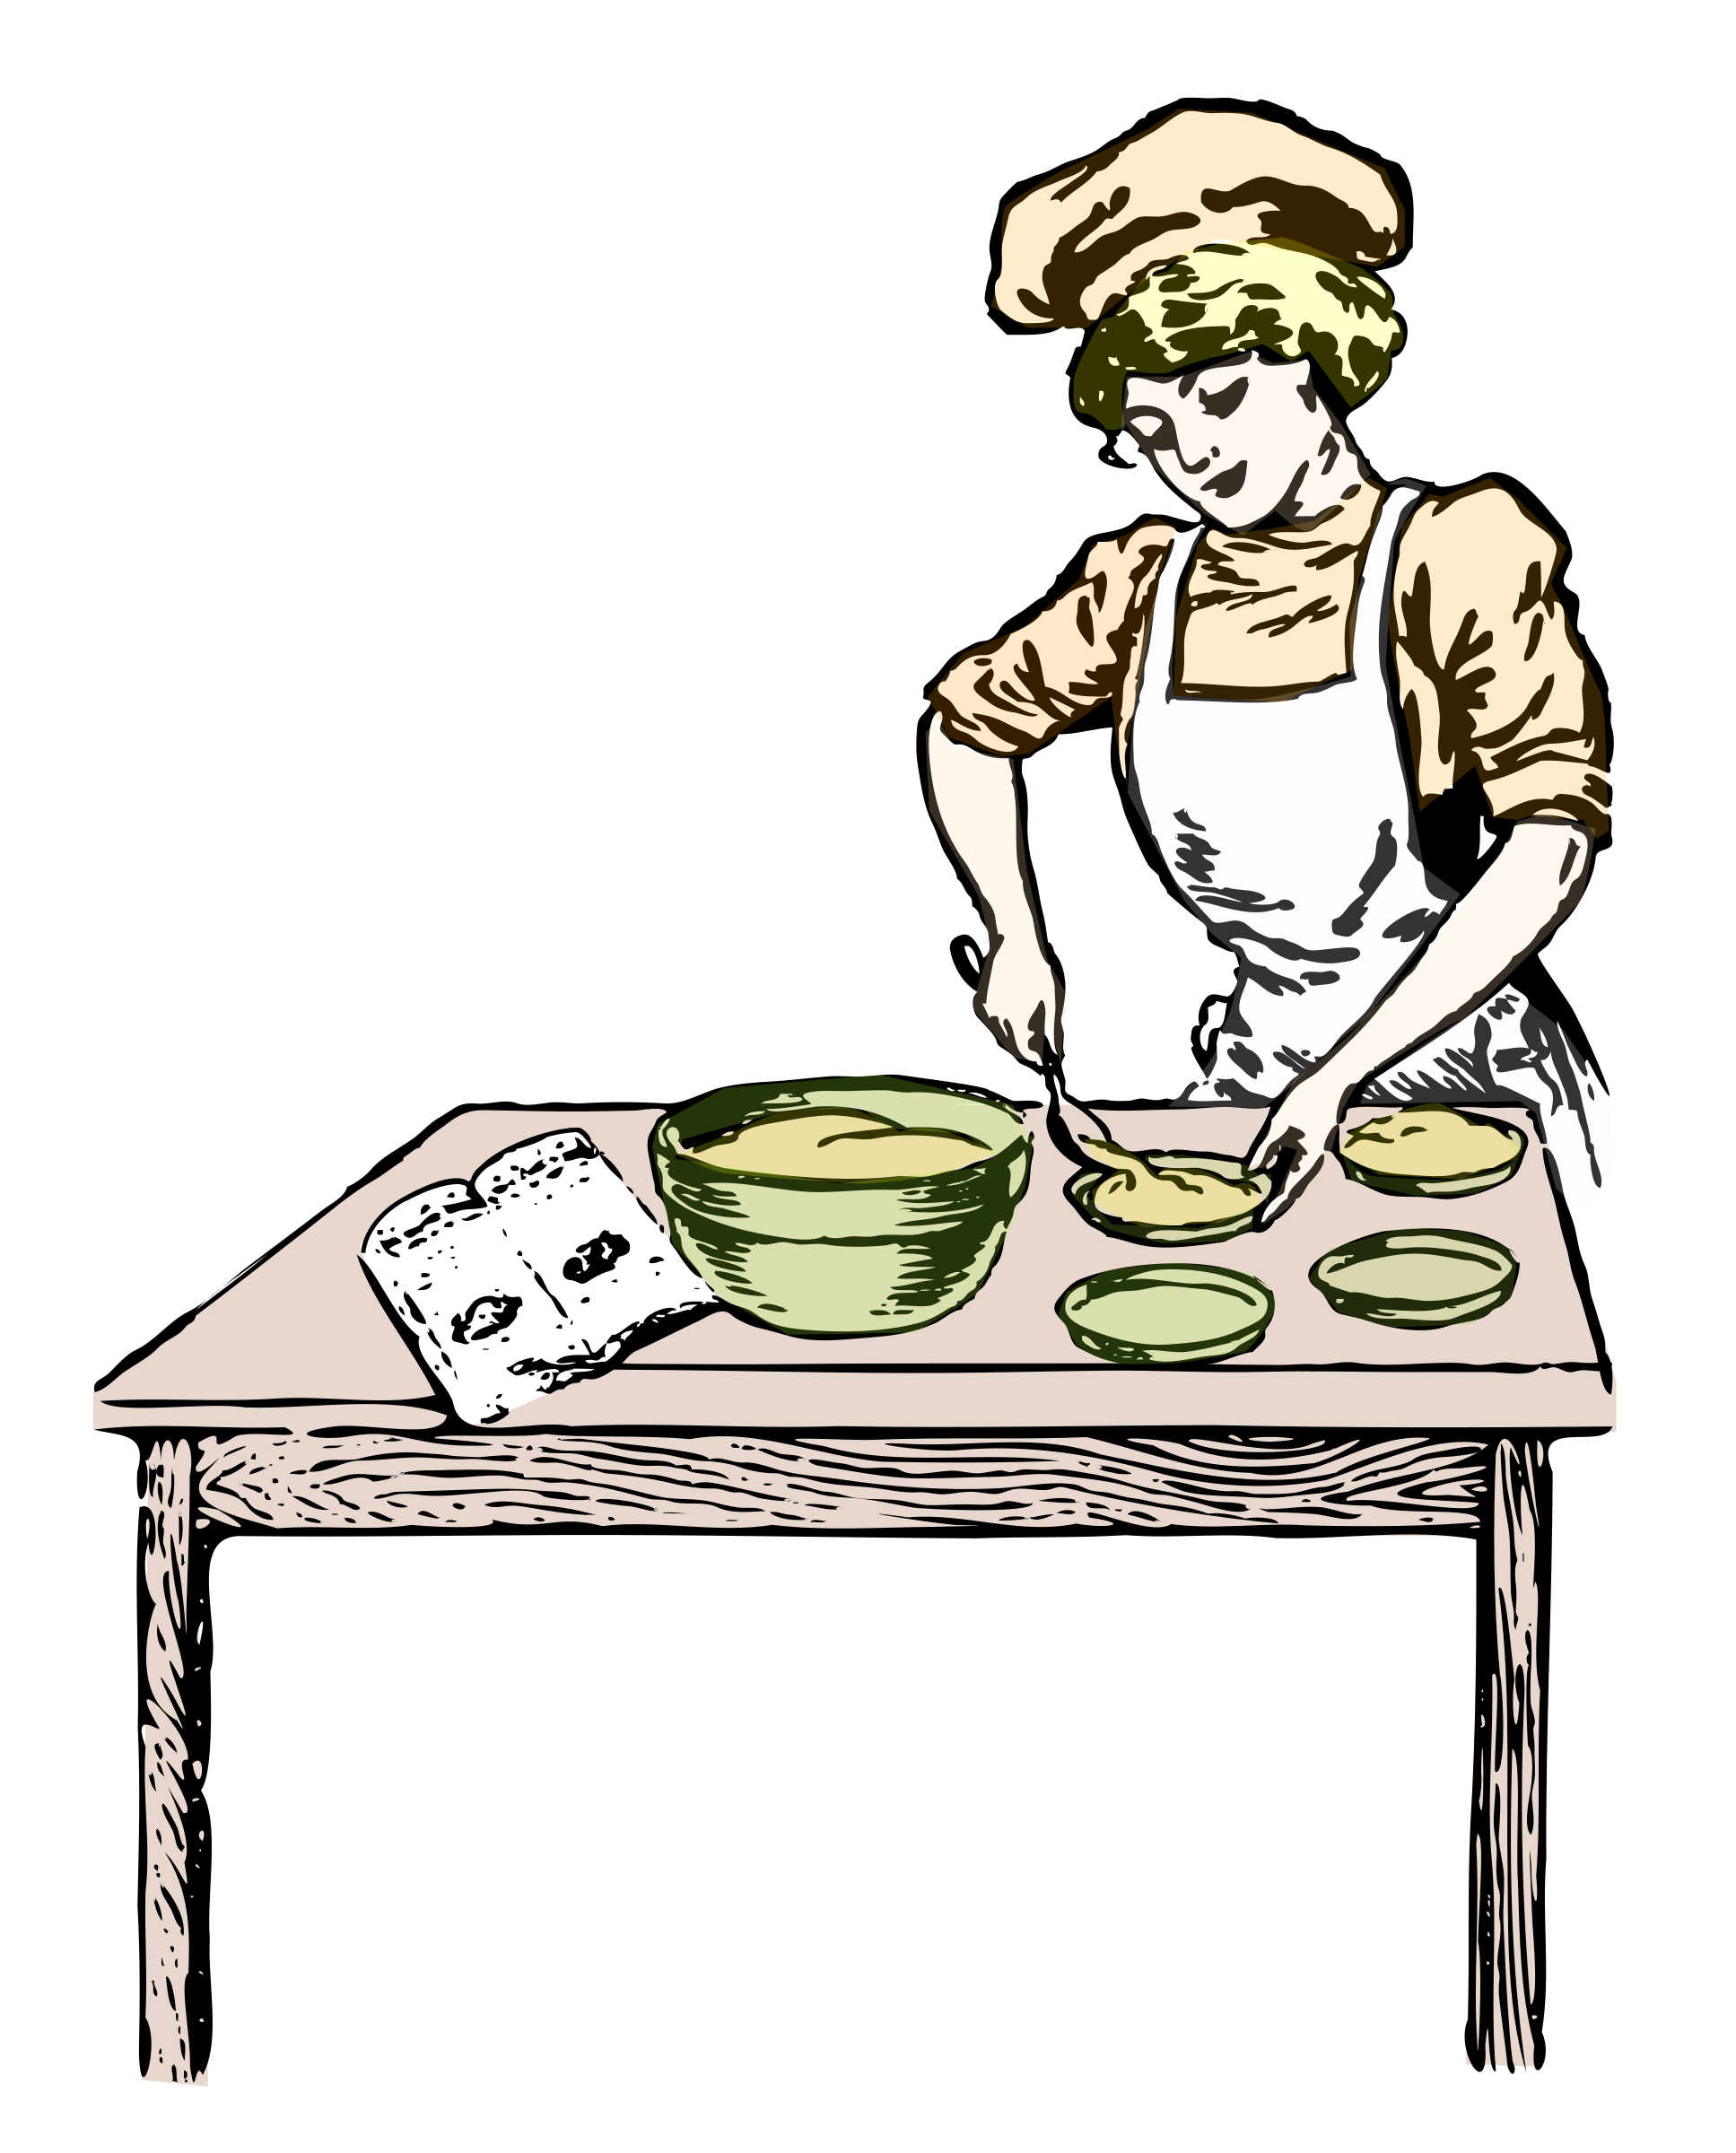 Baker in color by salvor